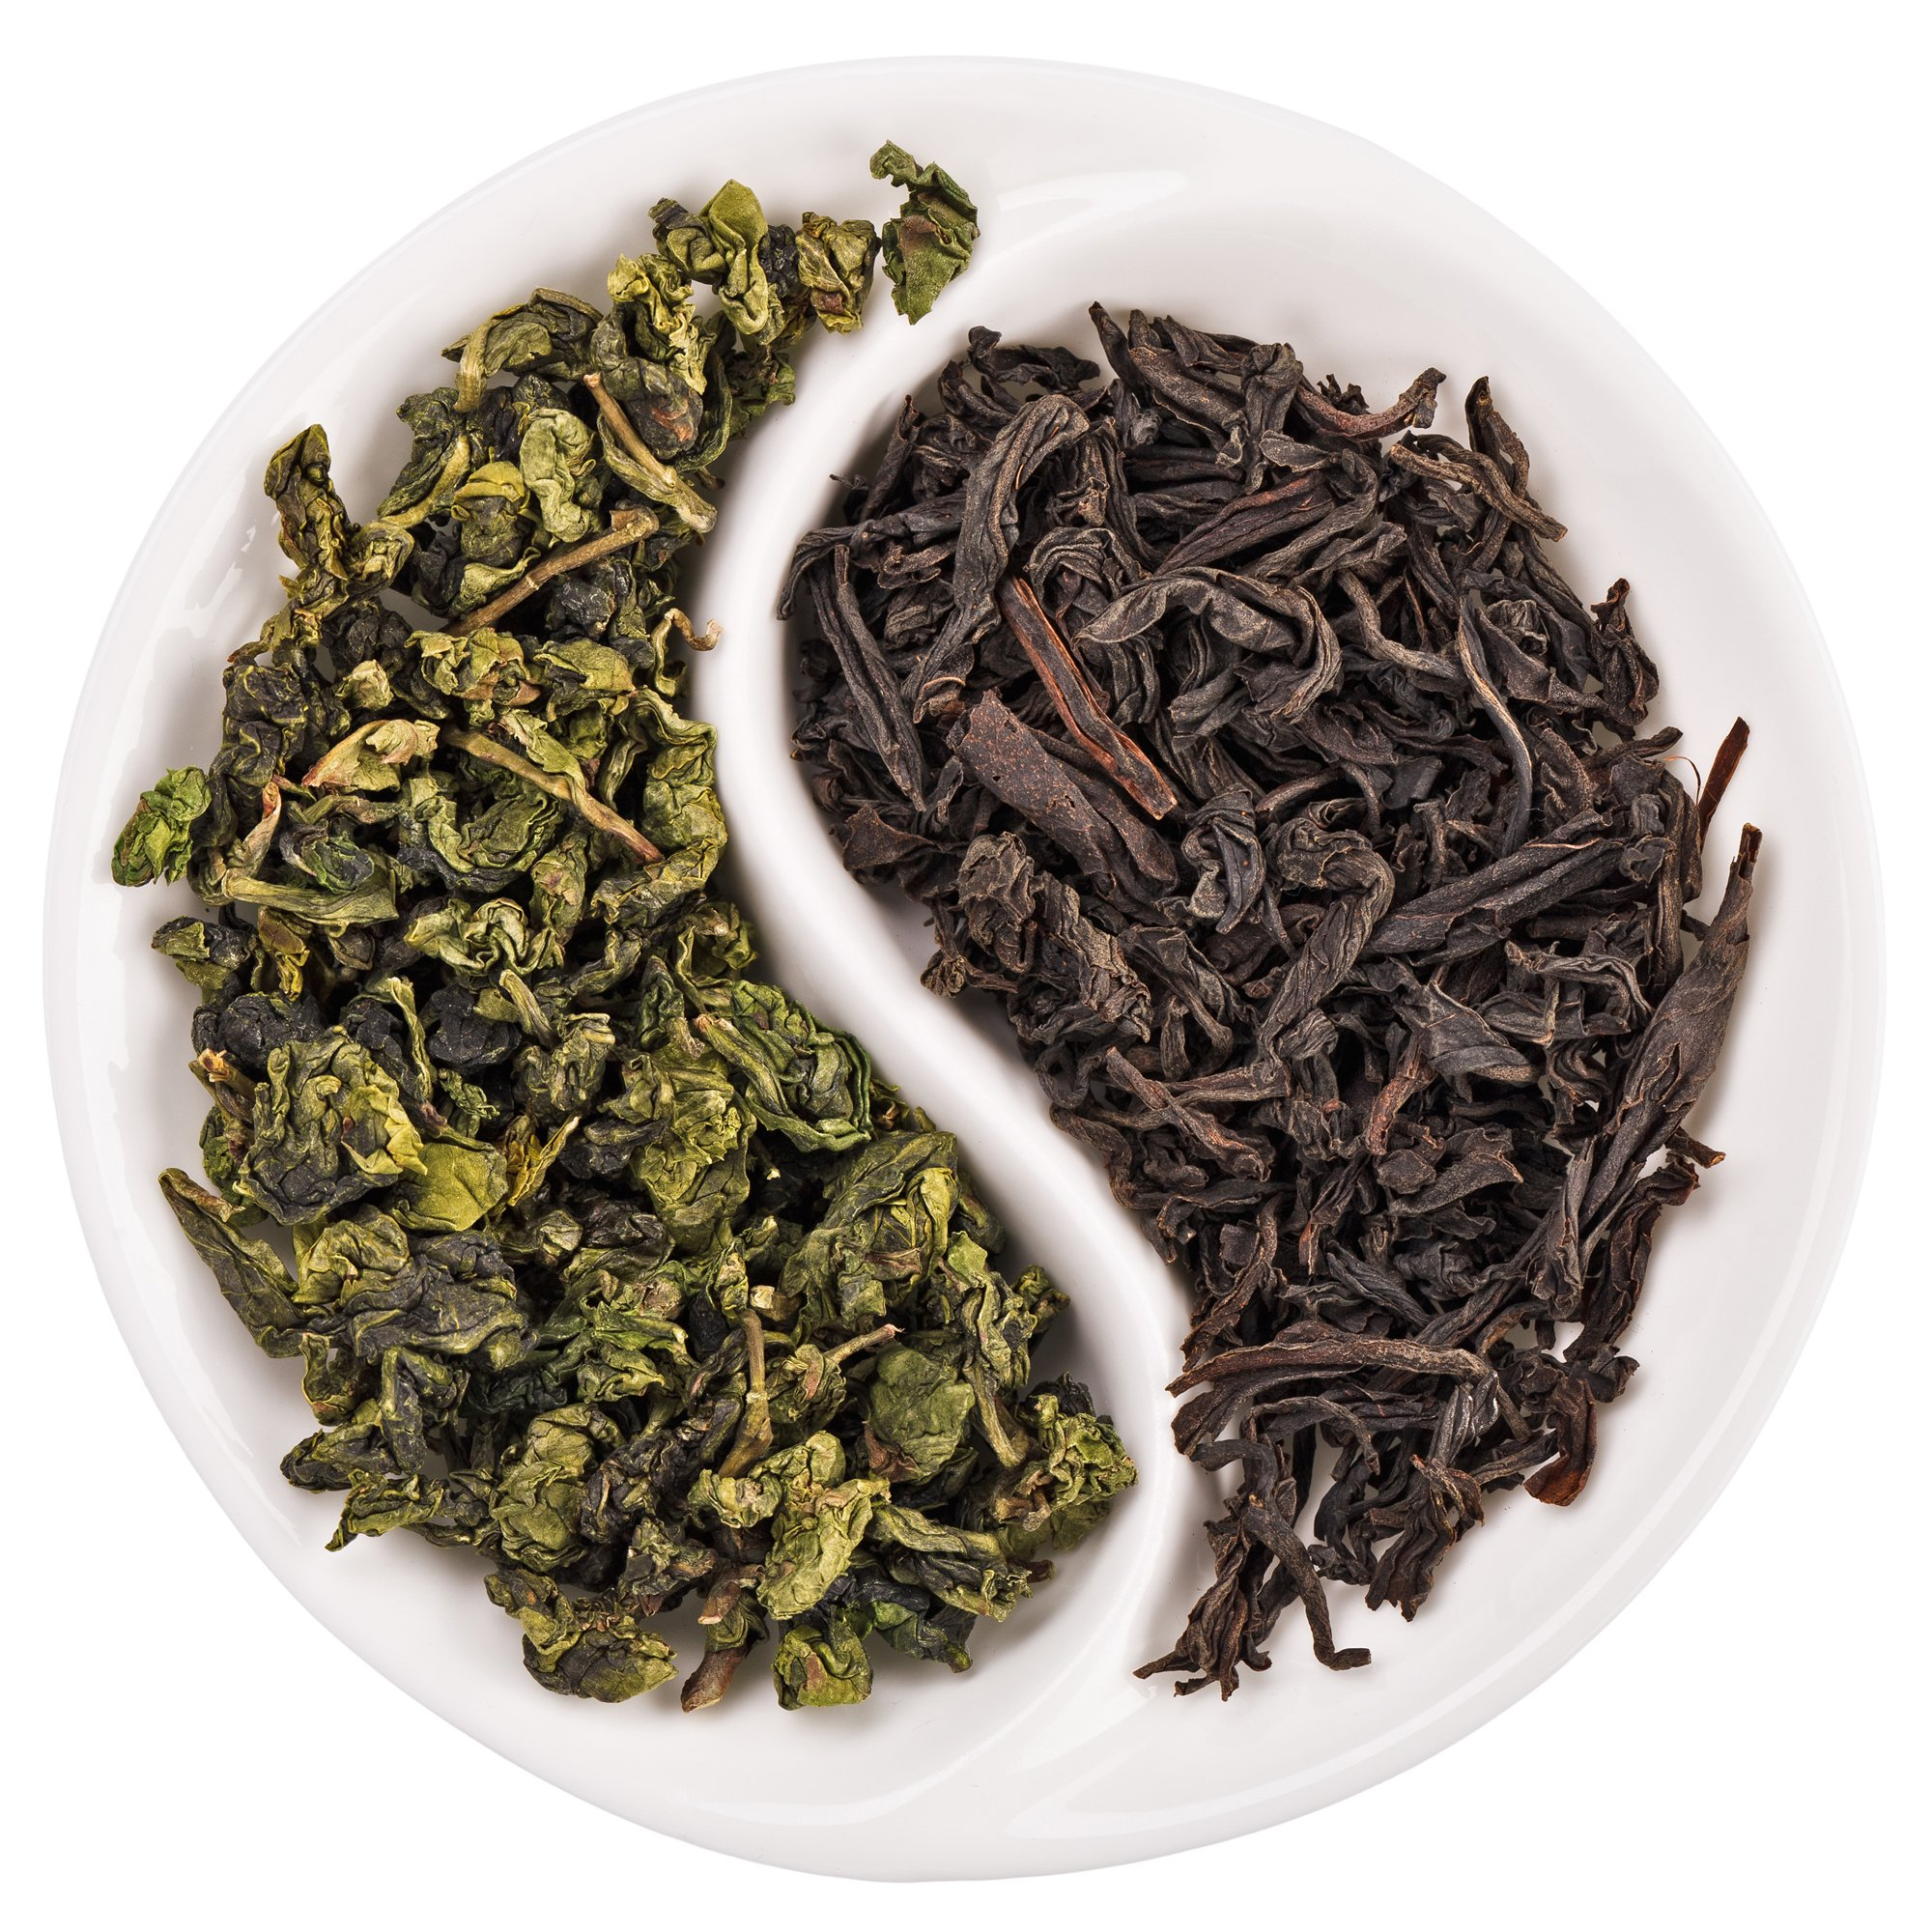 What's the Difference Between Green and Black Tea? | Kitchn